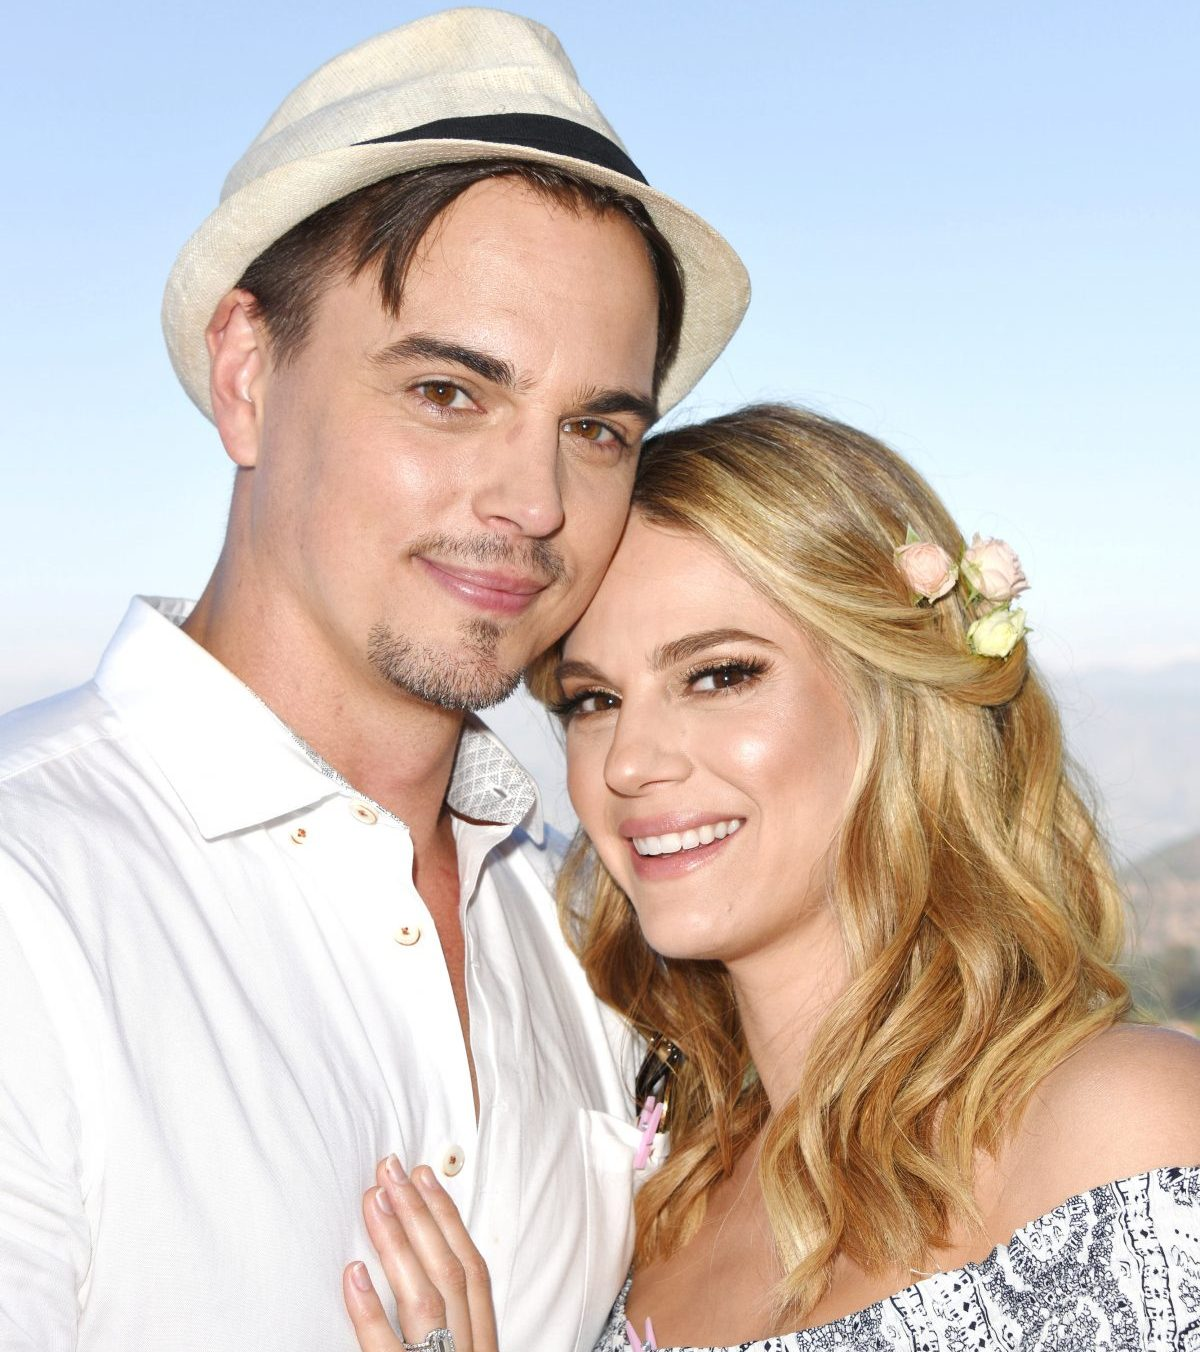 kelly kruger pregnantkelly kruger height, kelly kruger instagram, kelly kruger, kelly kruger young and the restless, kelly kruger blue mountain state, kelly kruger youtube, kelly kruger net worth, kelly kruger husband, kelly kruger and darin brooks, kelly kruger bms, kelly kruger and darin brooks wedding, kelly kruger bold and the beautiful, kelly kruger y&r, kelly kruger feet, kelly kruger pregnant, kelly kruger age, kelly kruger actress, kelly kruger movies, kelly kruger imdb, kelly krueger md